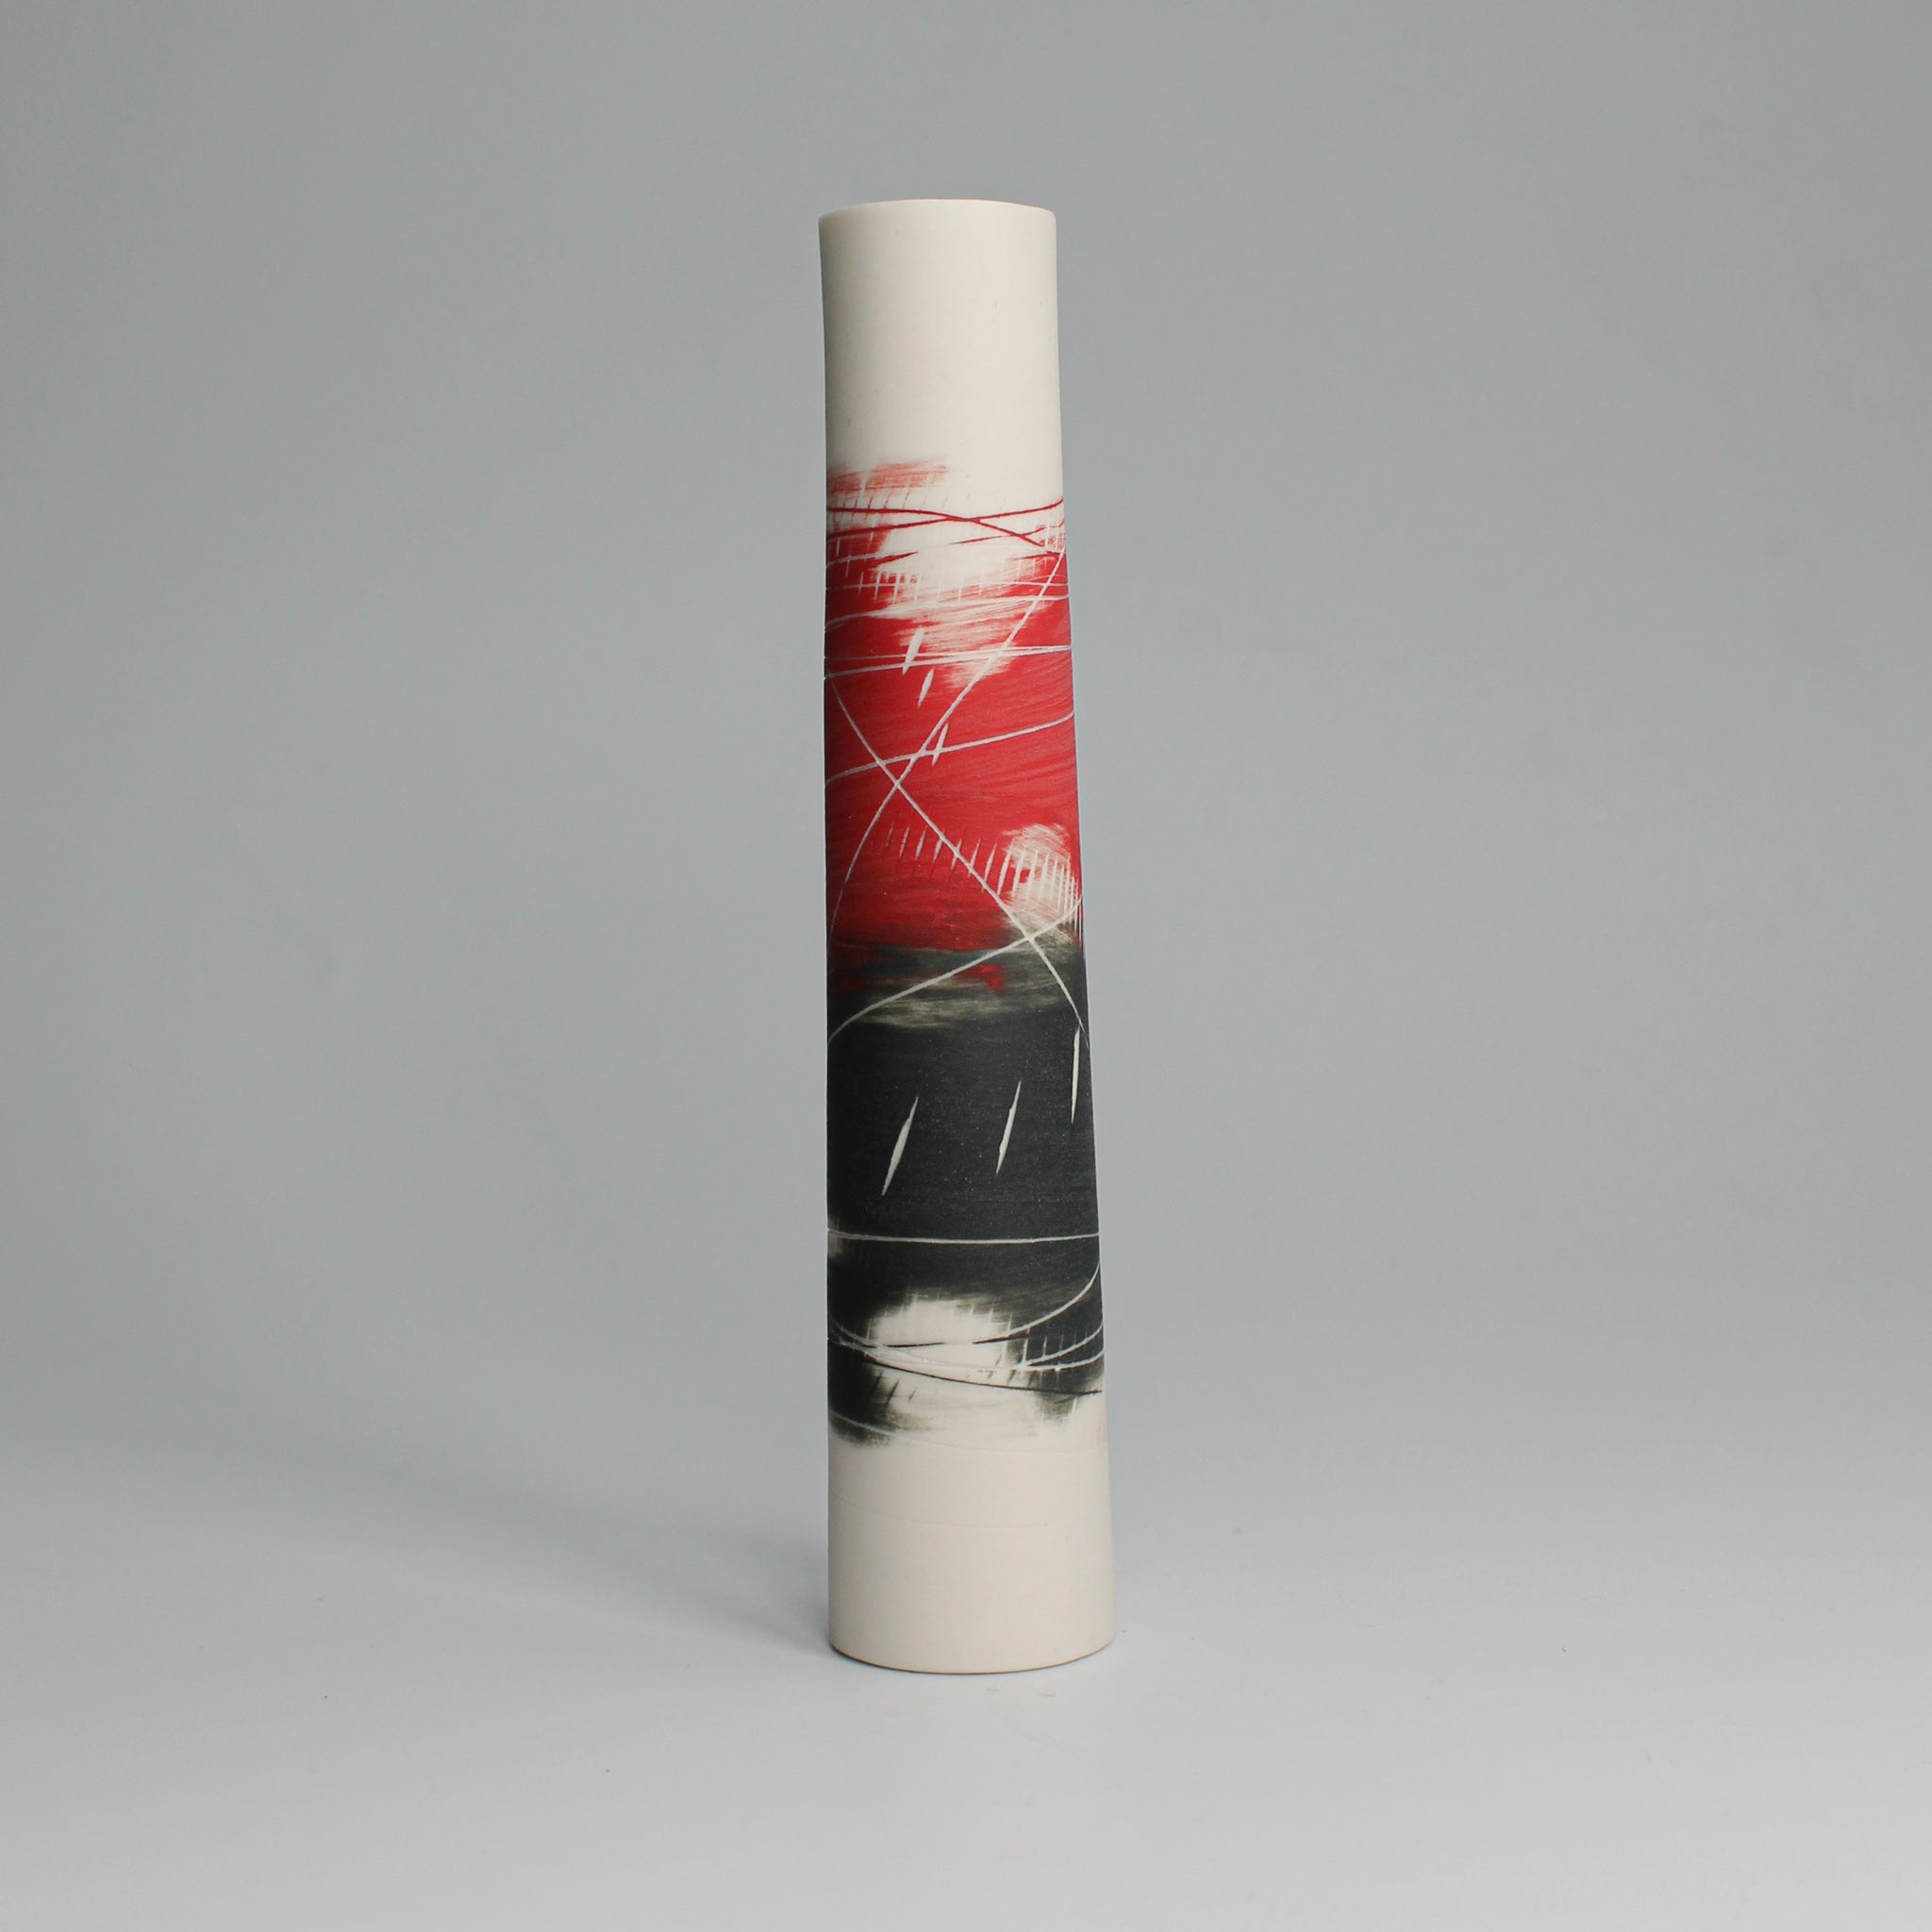 Pottery red, white and black single stem vase